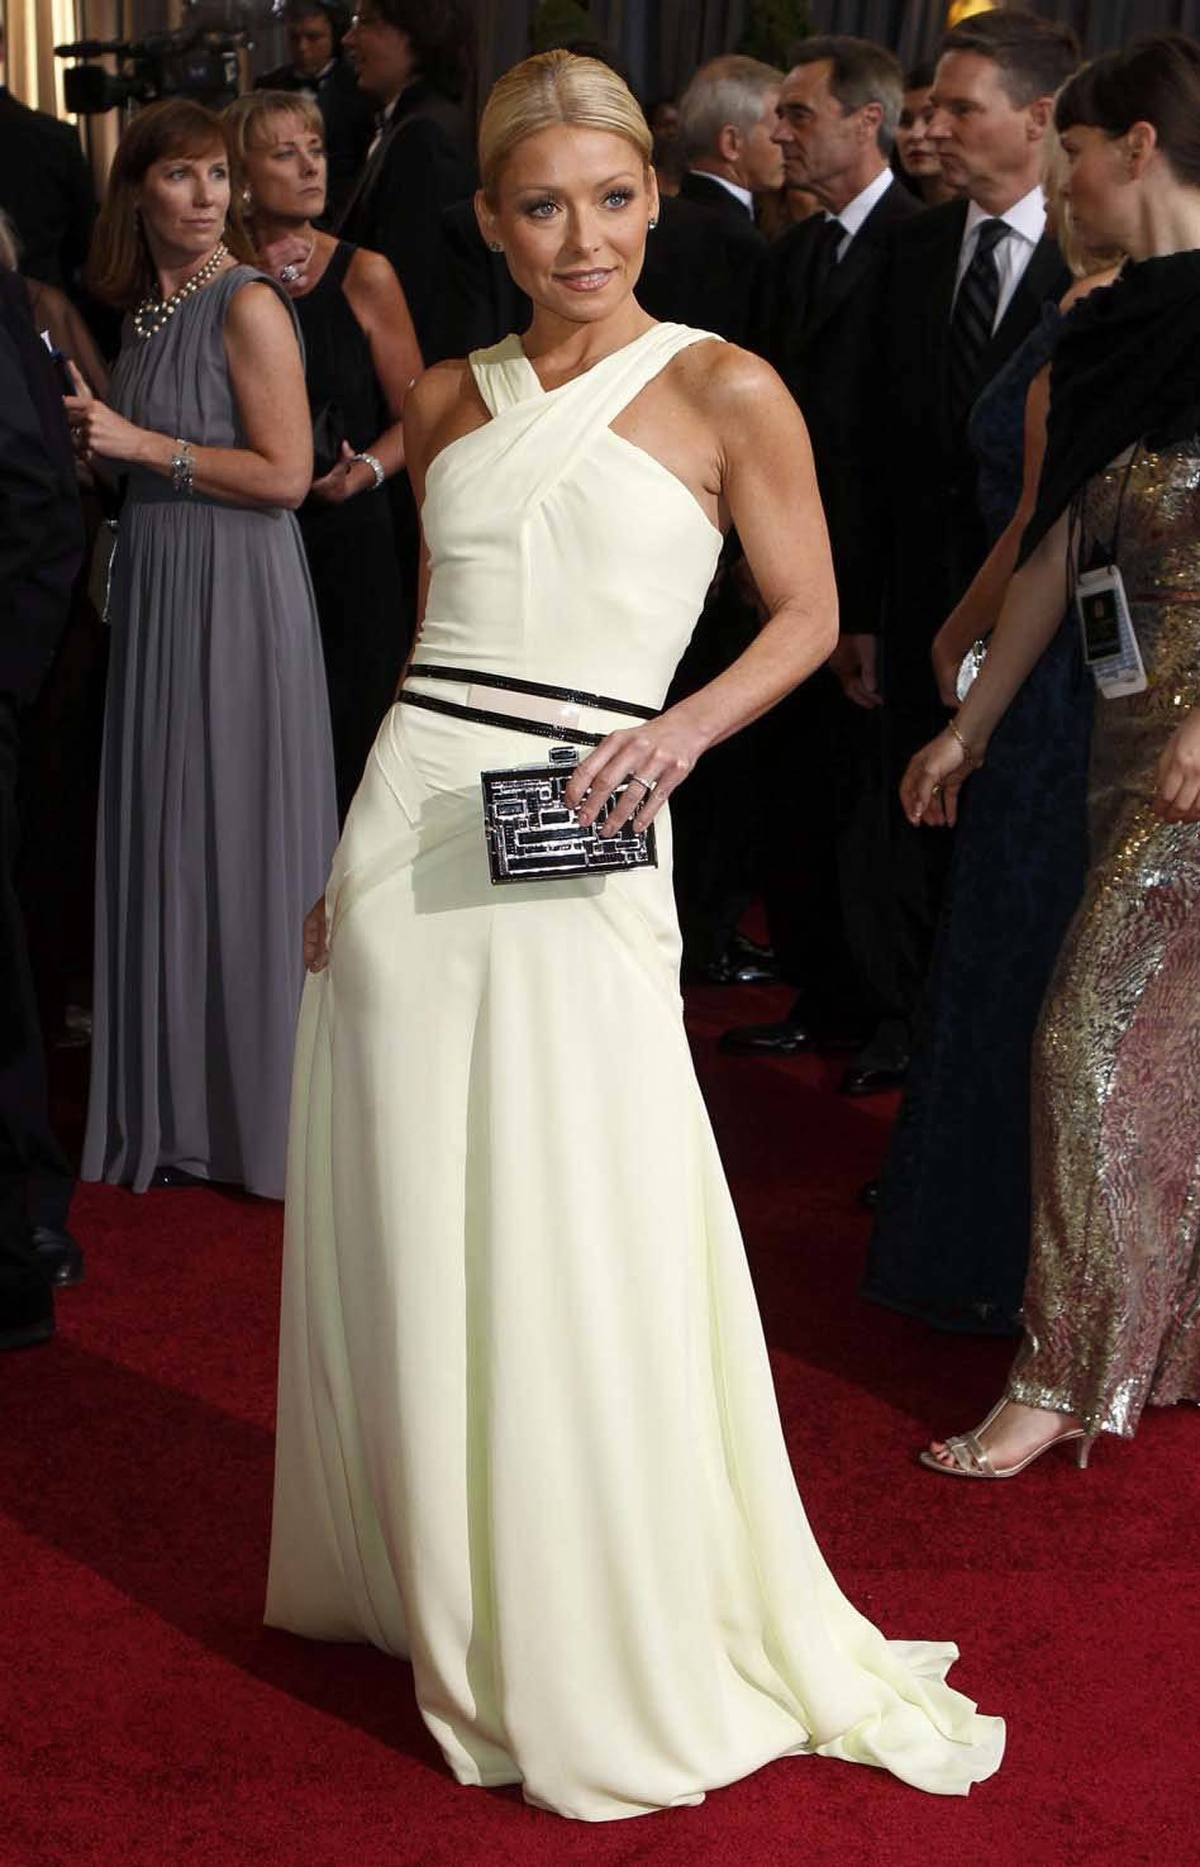 Talk show host Kelly Ripa, or what's left of her, poses on the Oscars red carpet on Sunday.